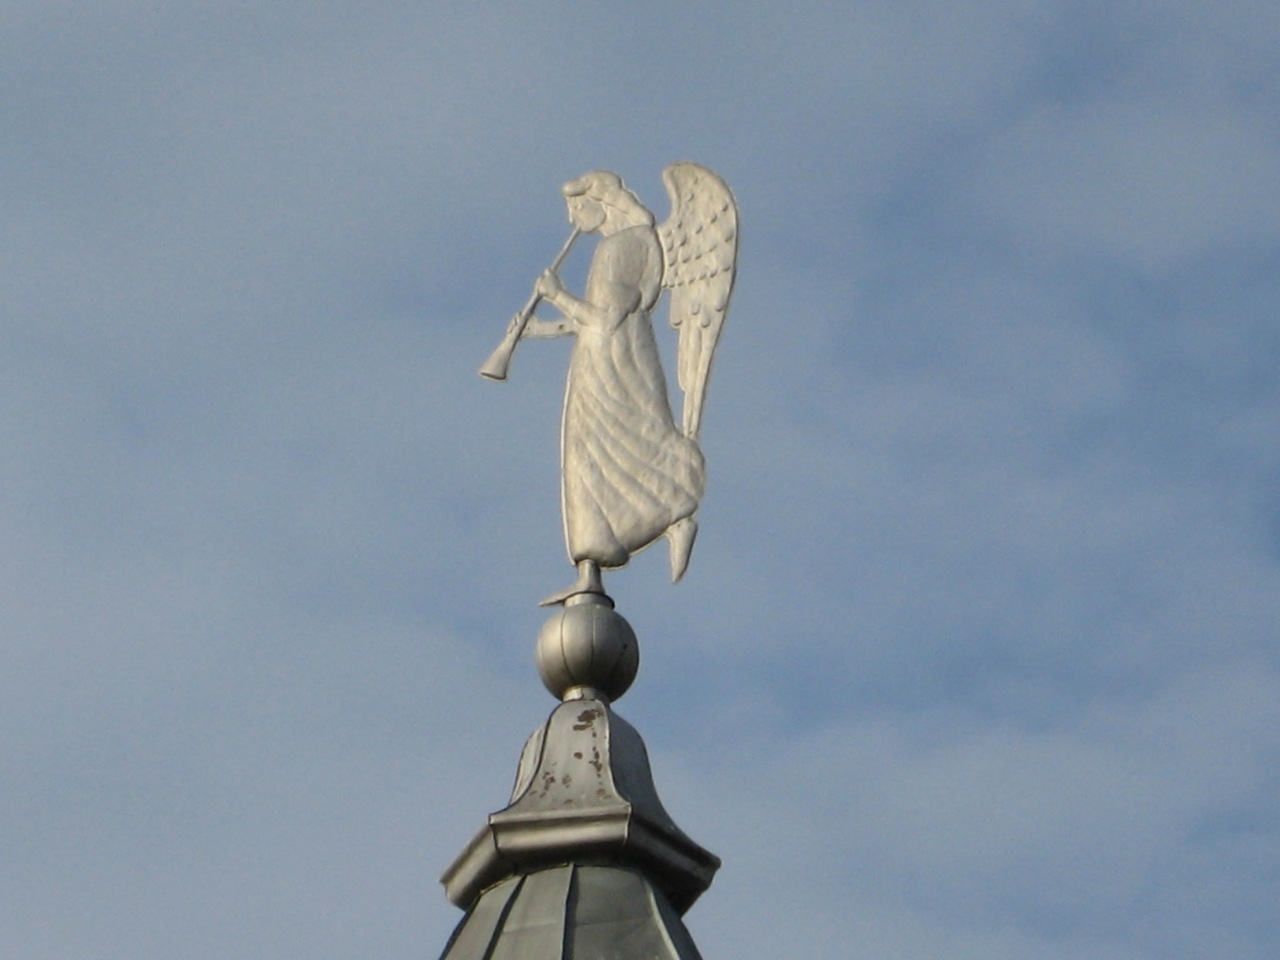 angel-on-top-of-the-tower-at-the-vysotsky-monastery